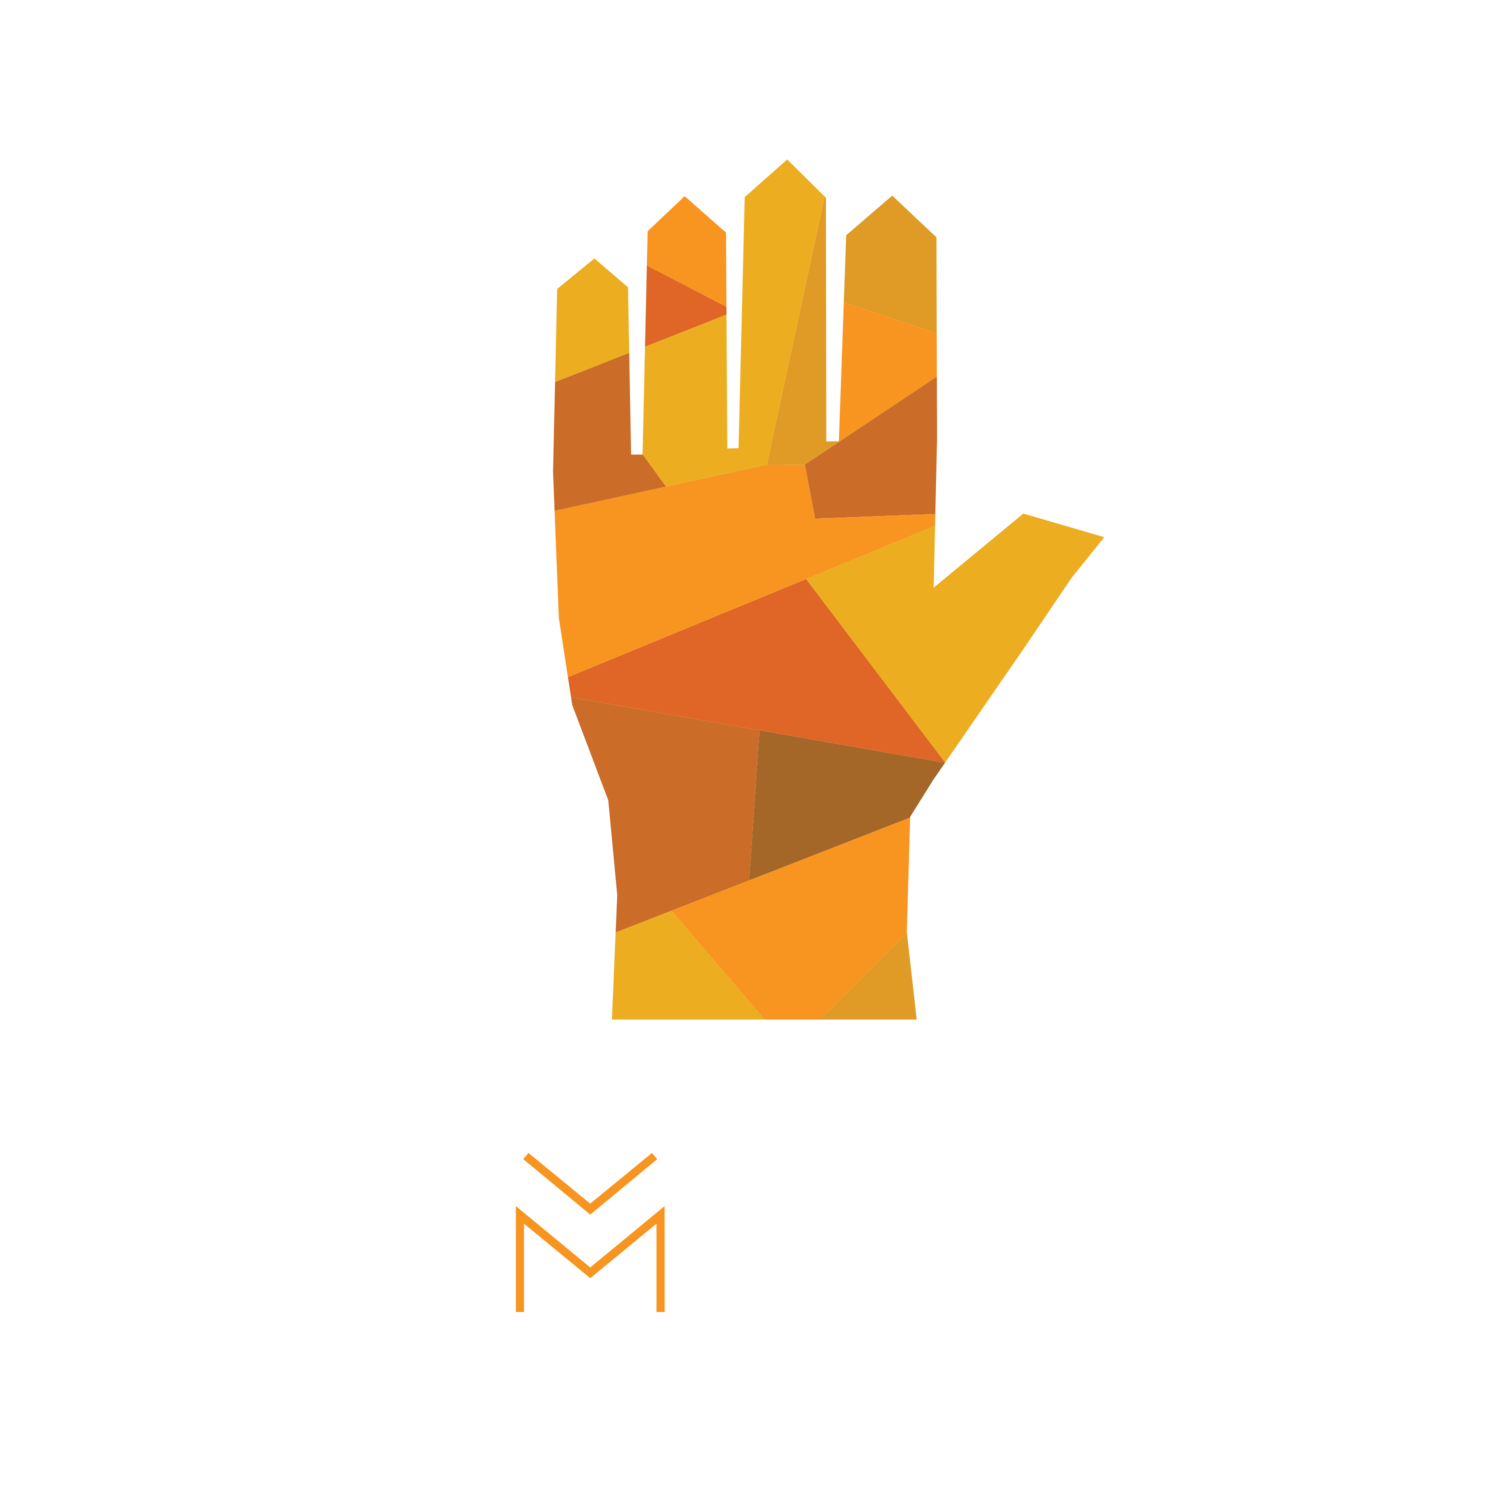 Fight Blight Bmore